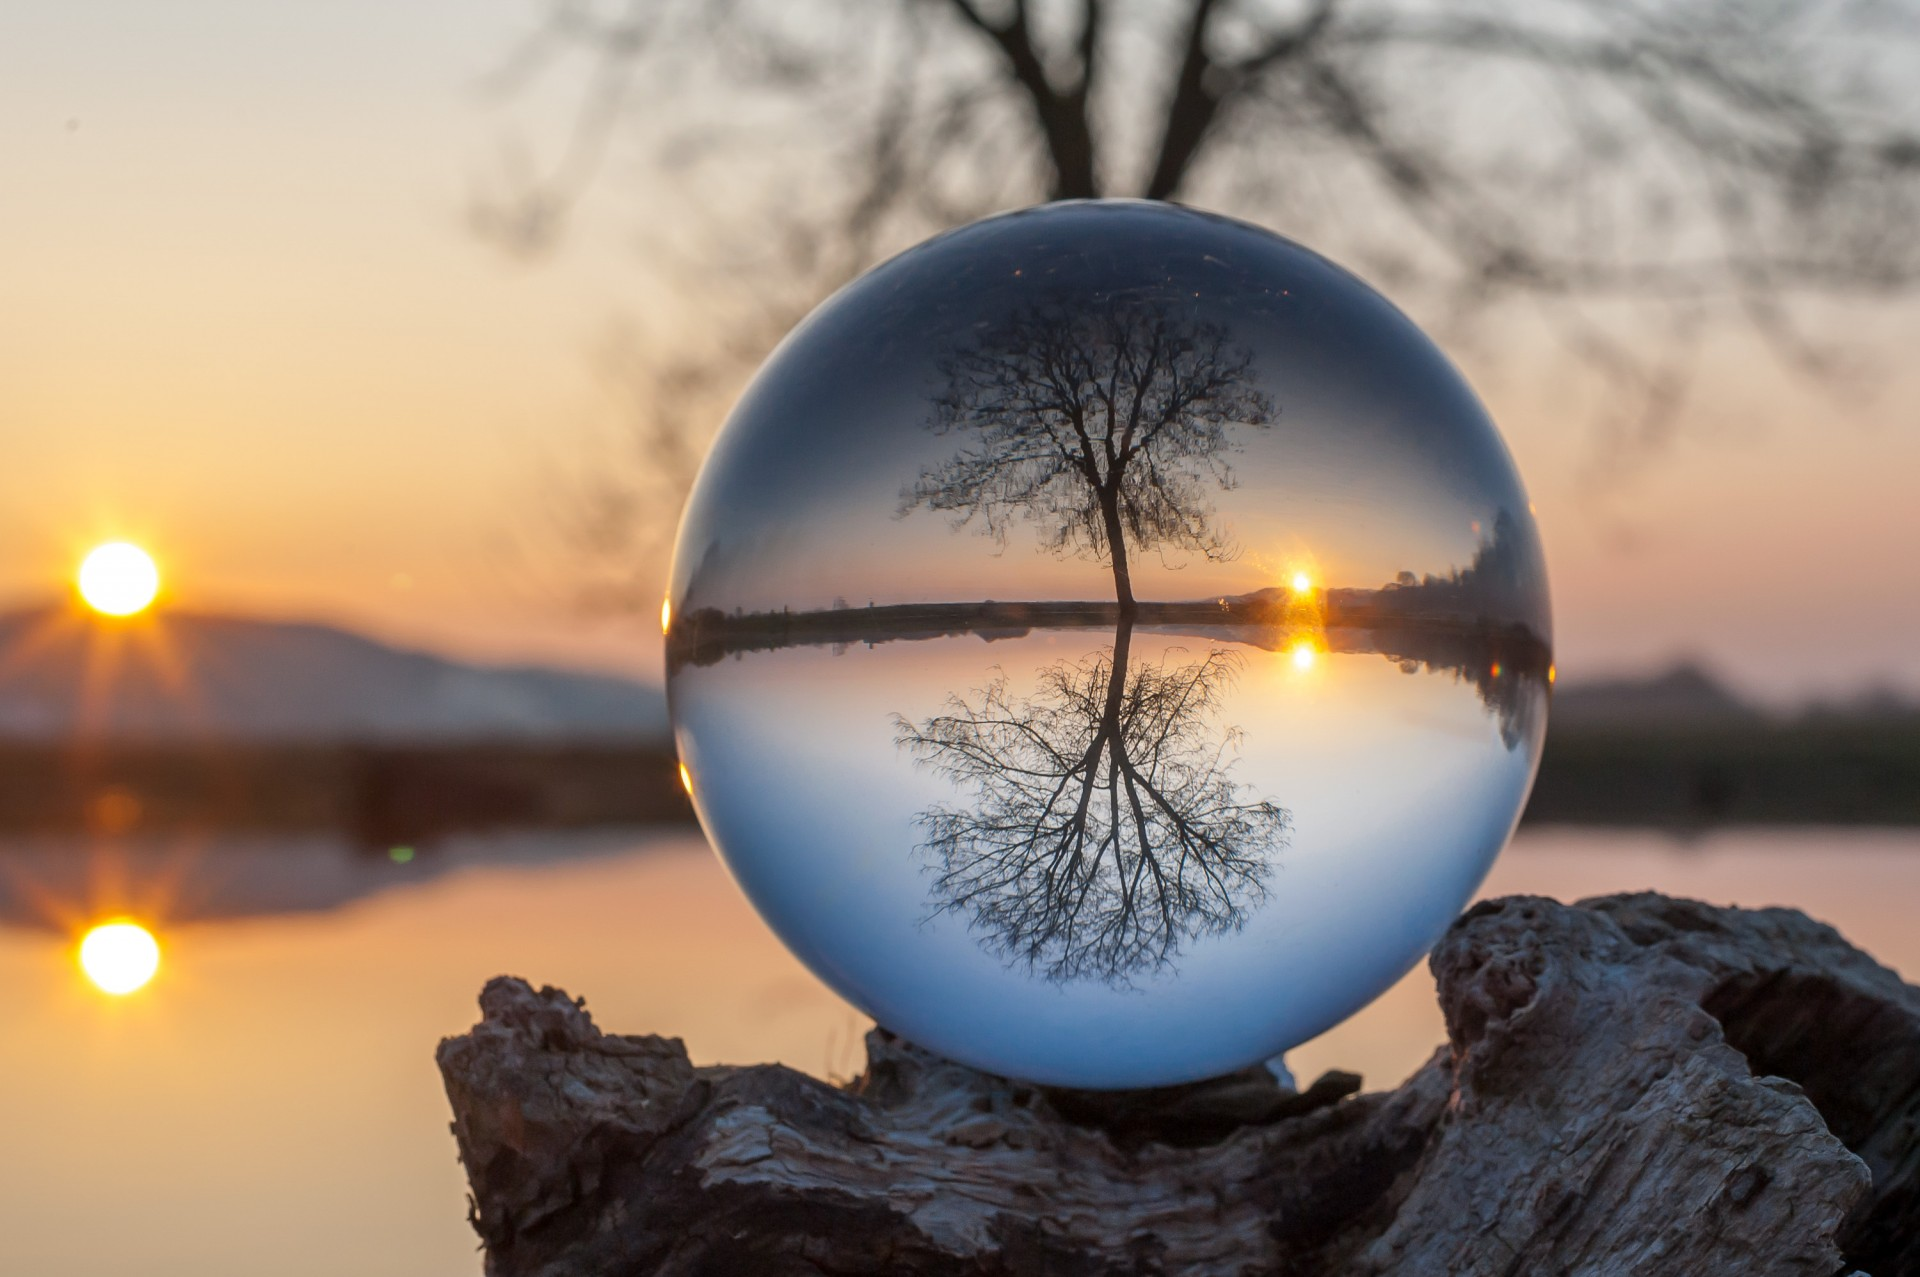 Photography 1001 : Crystal Ball Photography – T-Dimension